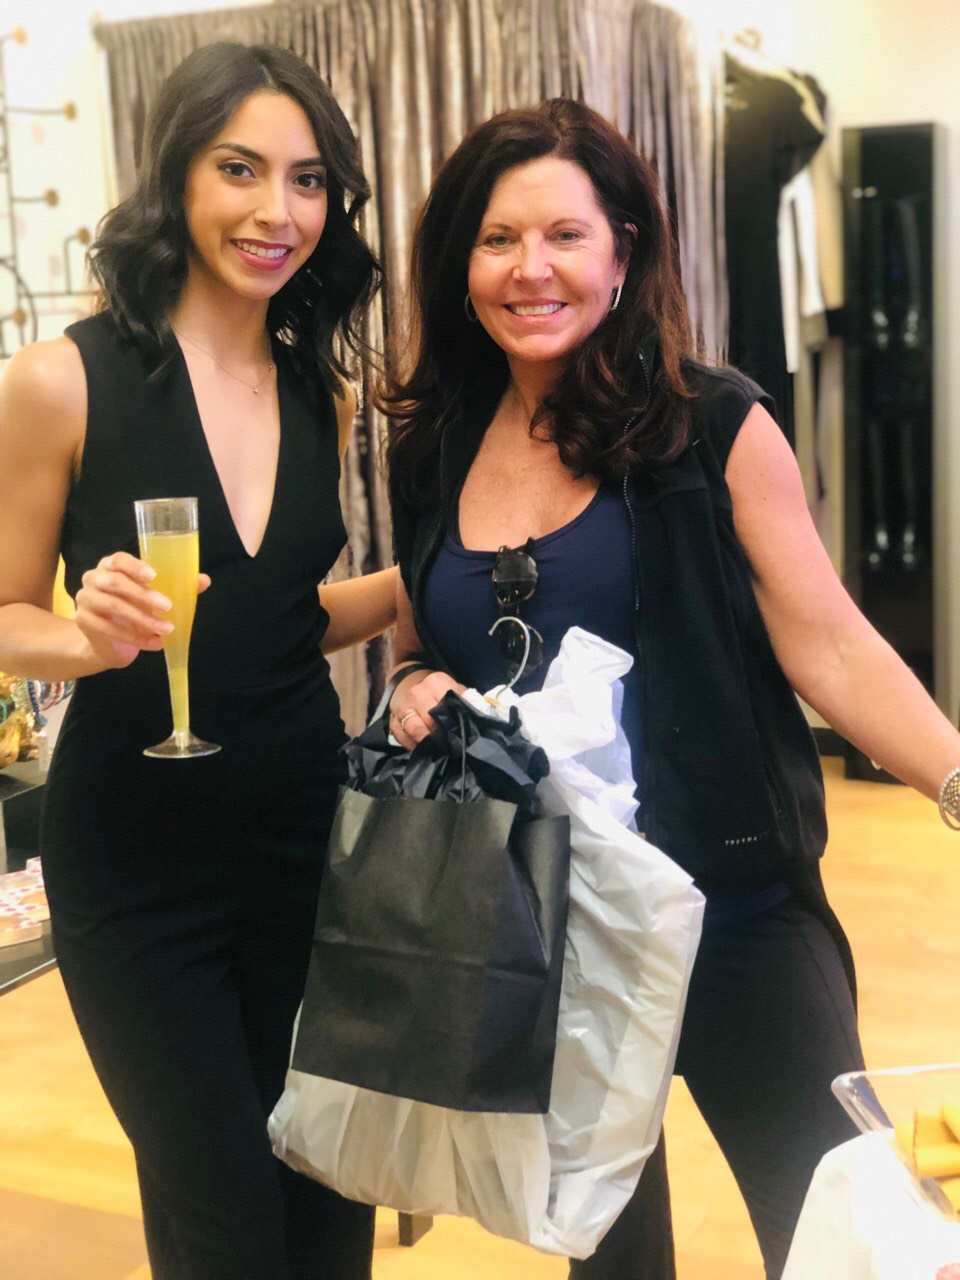 Socialite Alejandra with one of our shopping guests!